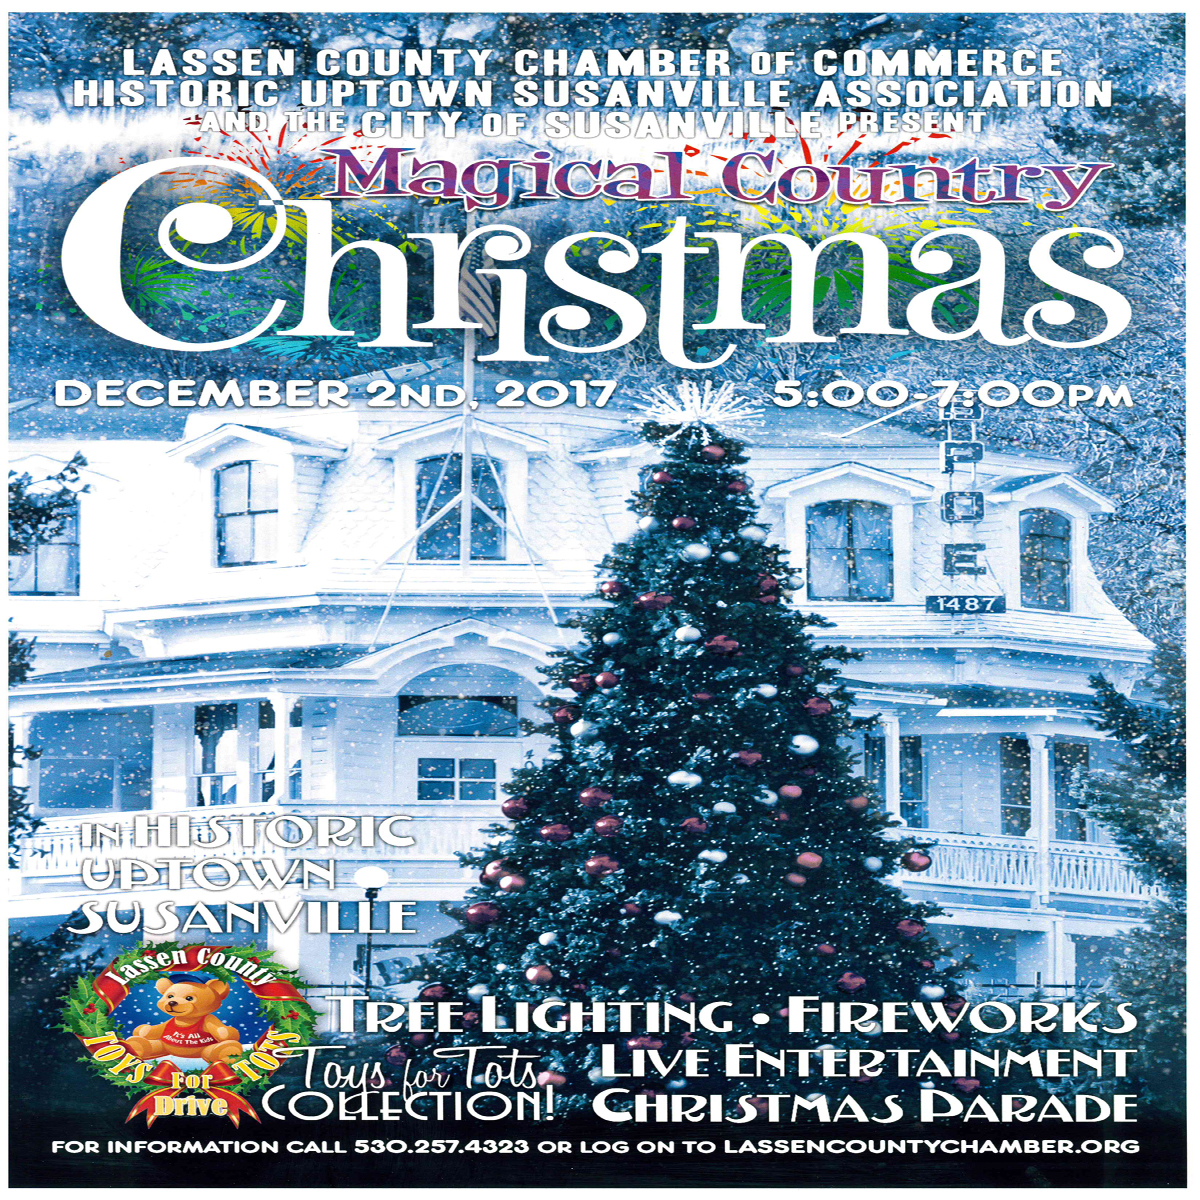 Historic Uptown Susanville Magical Country Christmas